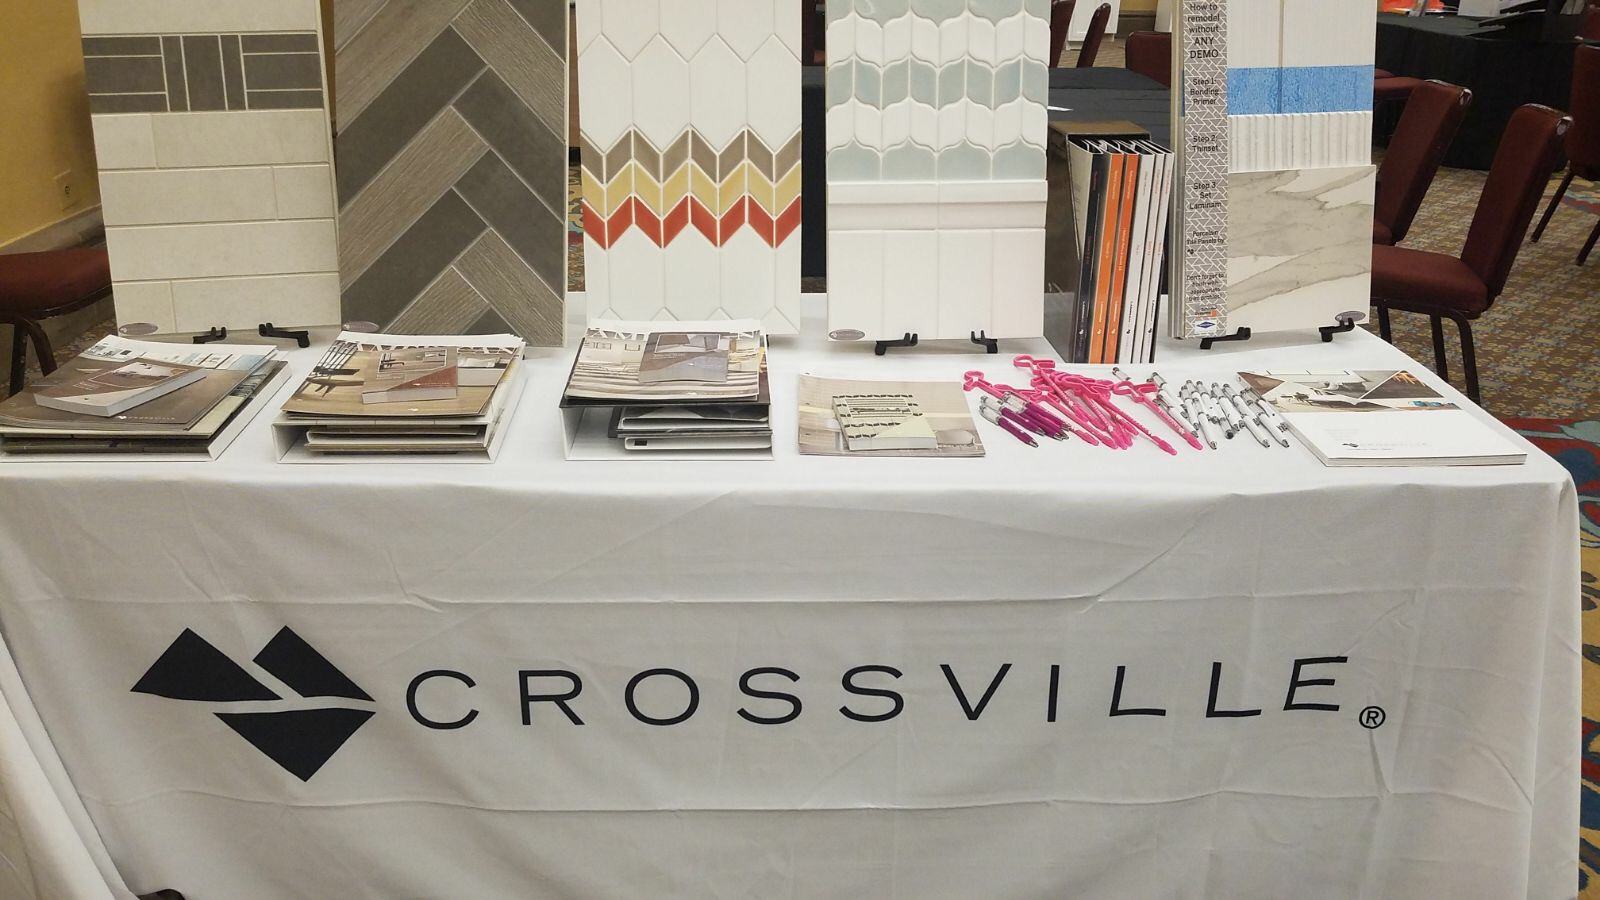 Crossville Tile display at SEN Fall 2017 Conference